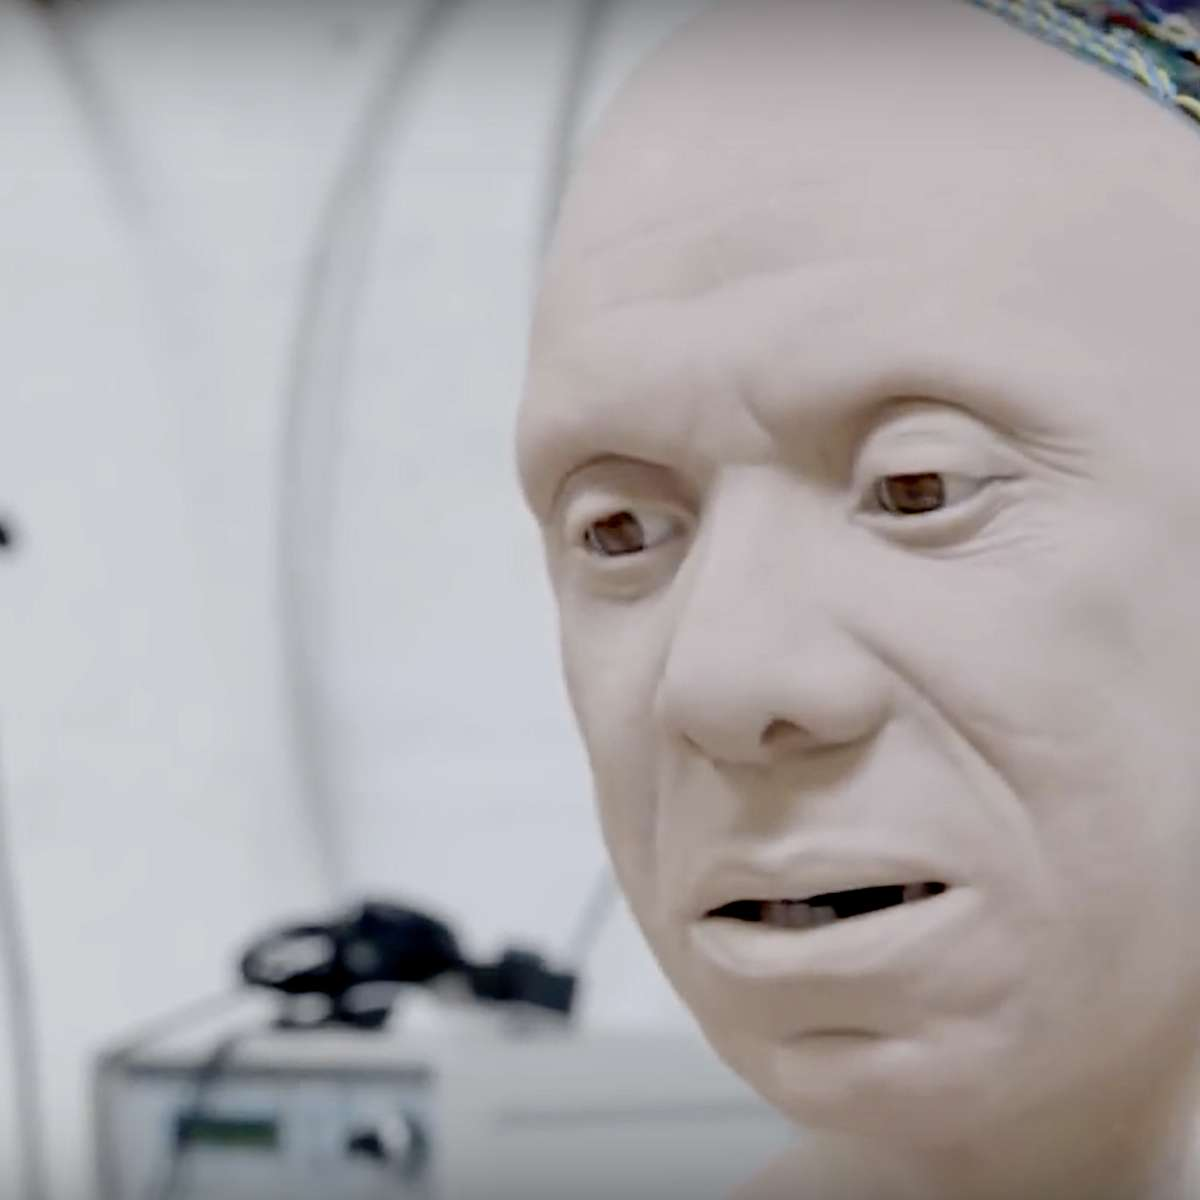 westworld fred the real robot in london 2018.png